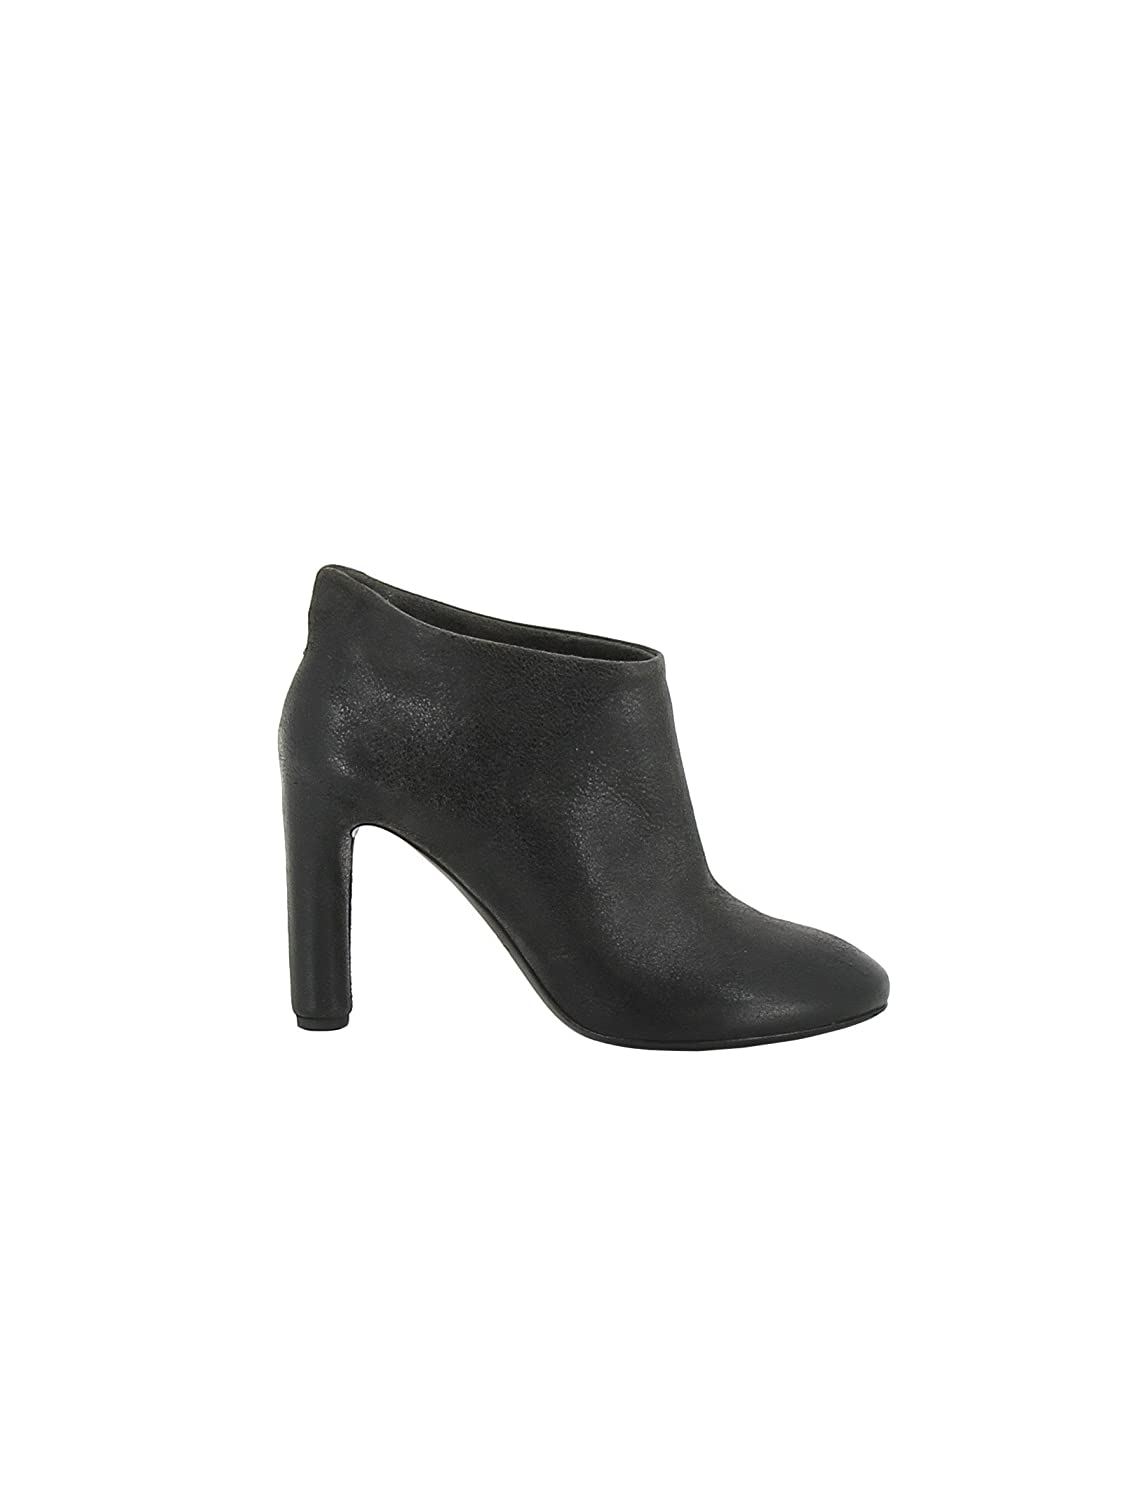 ROBERTO DEL CARLO WOMEN'S 10254GHISA BLACK LEATHER ANKLE BOOTS